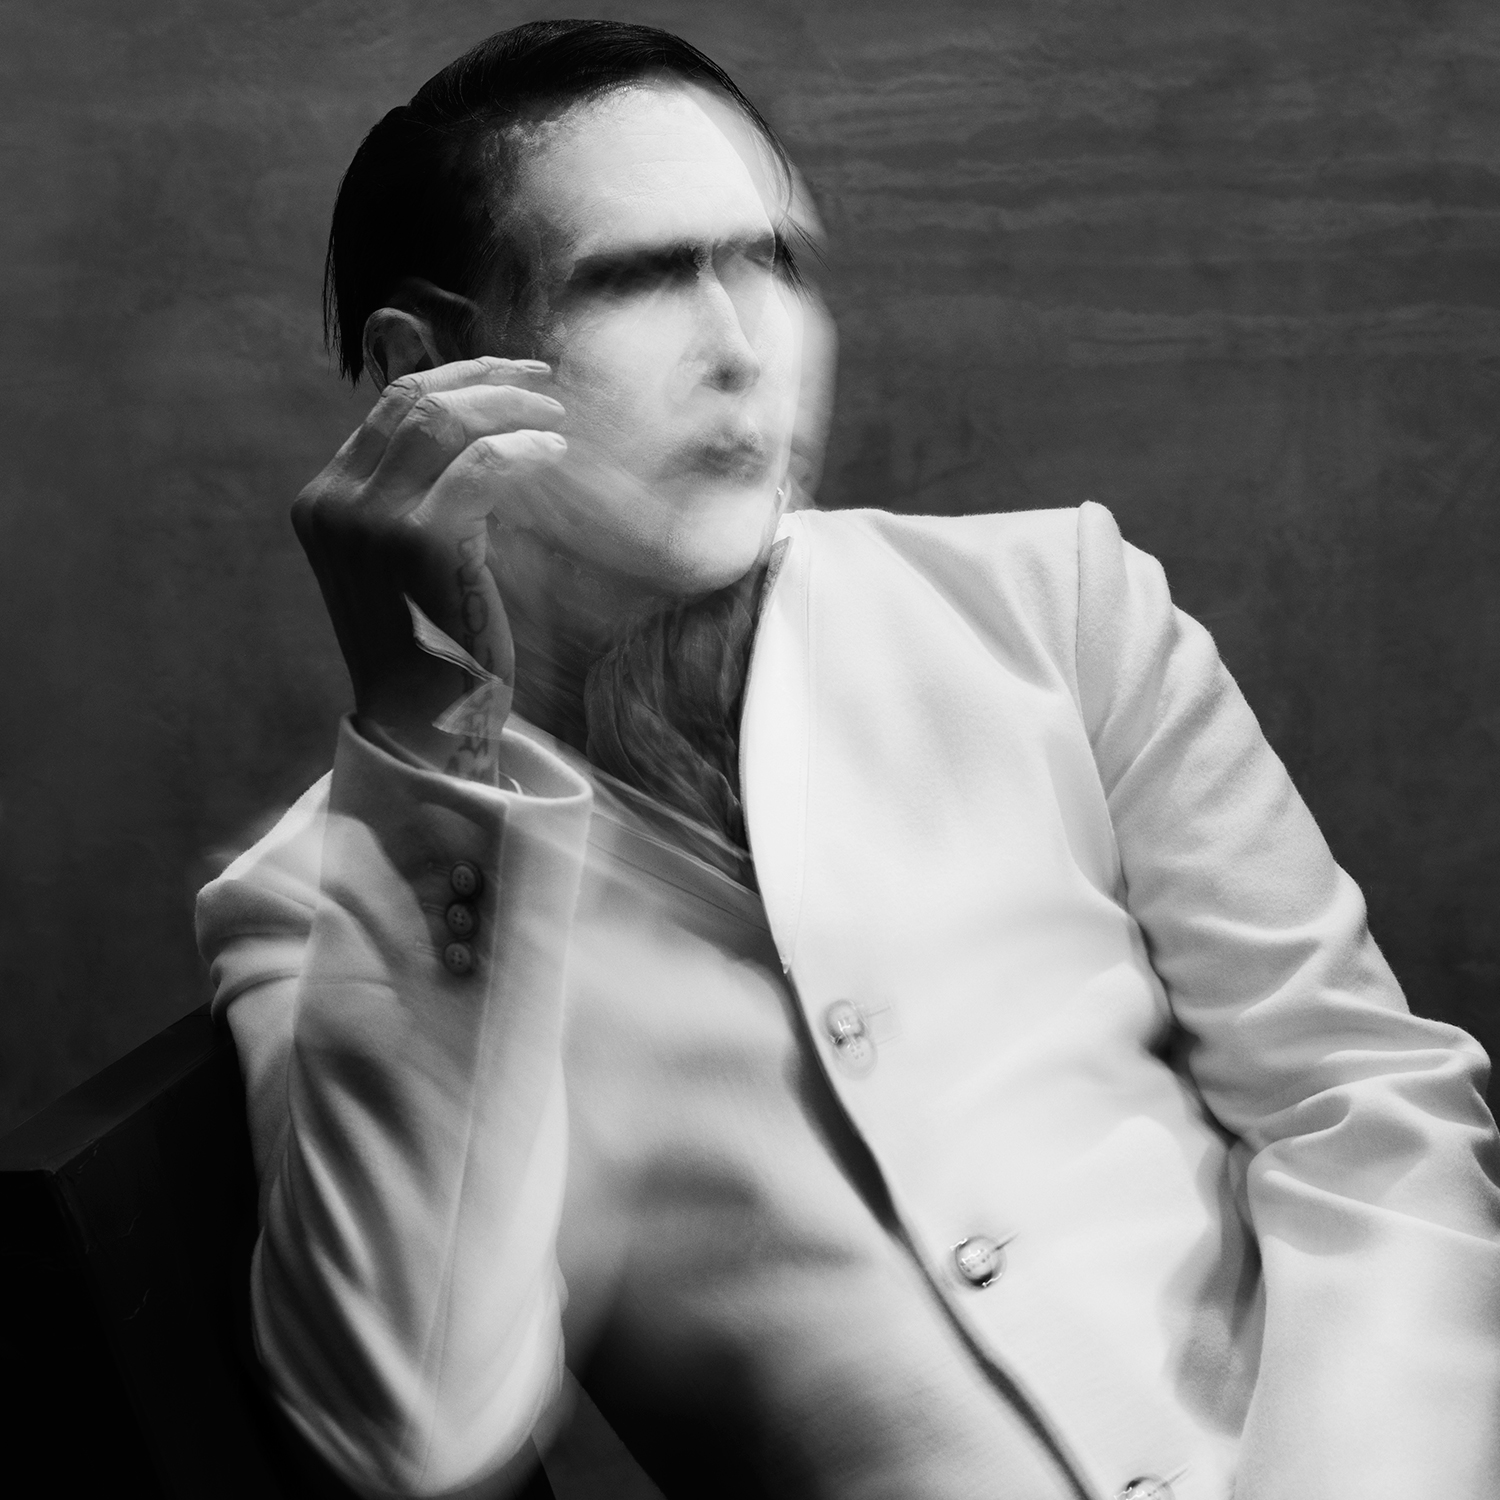 Video of the day: Marilyn Manson - The Mephistopheles of Los Angeles